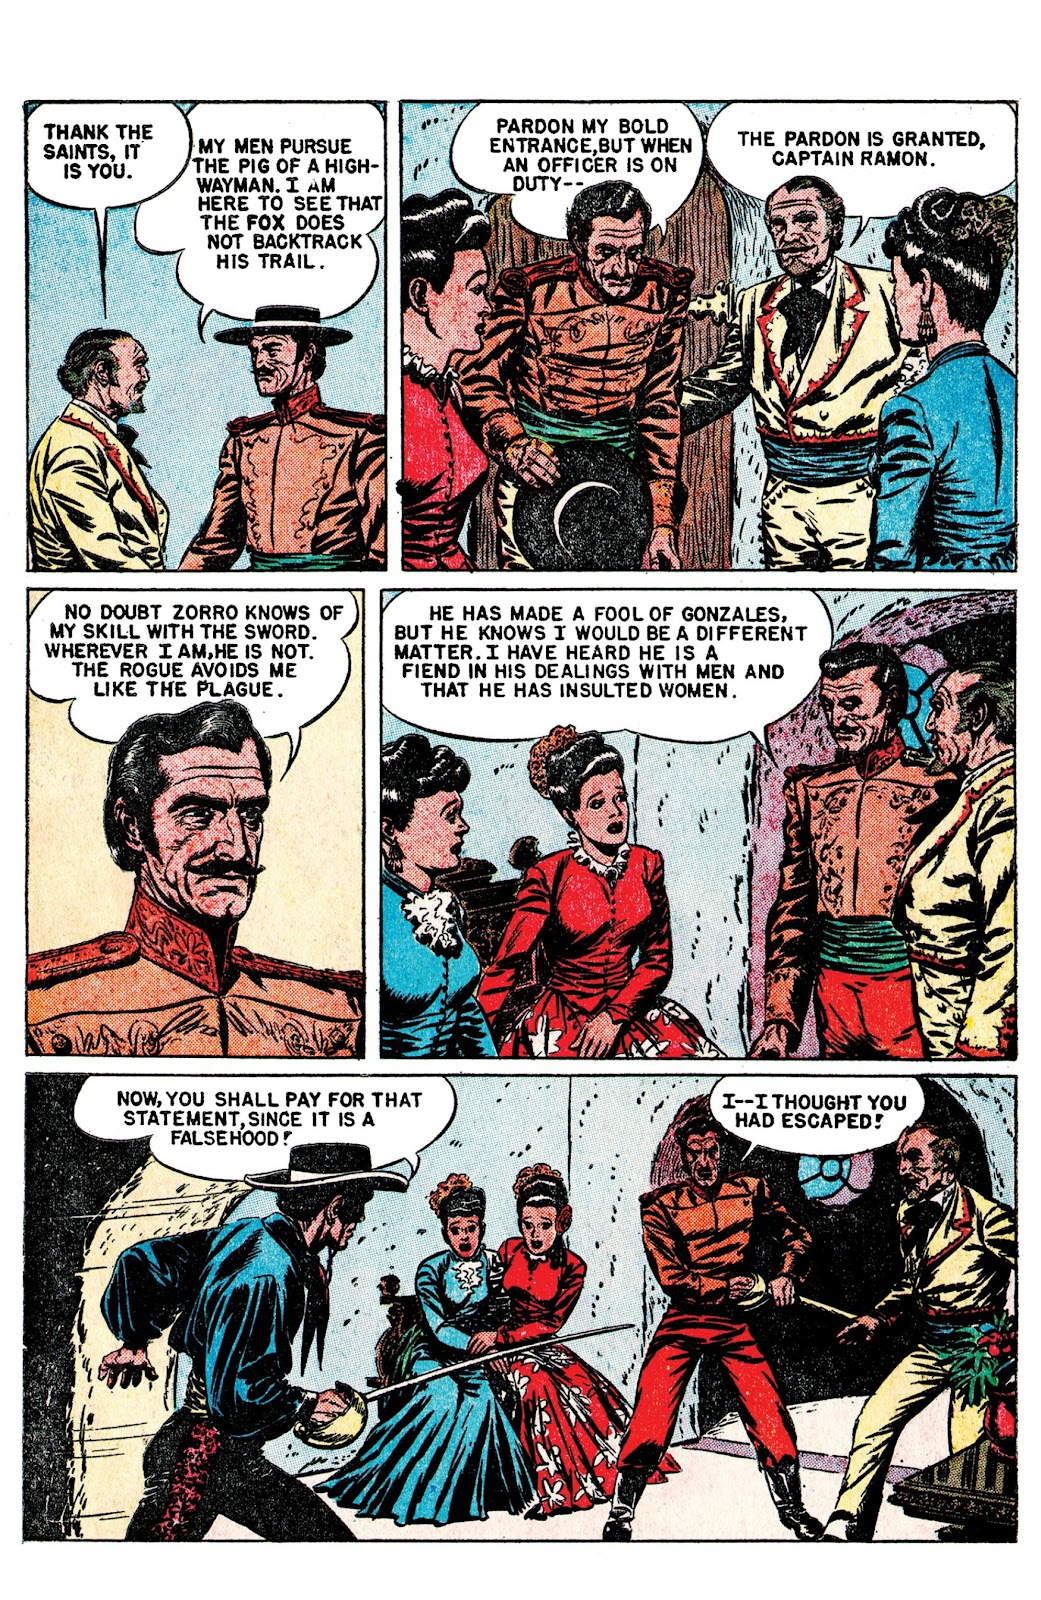 Read online AM Archives: The Mark of Zorro #1 1949 Dell Edition comic -  Issue #1 1949 Dell Edition Full - 10